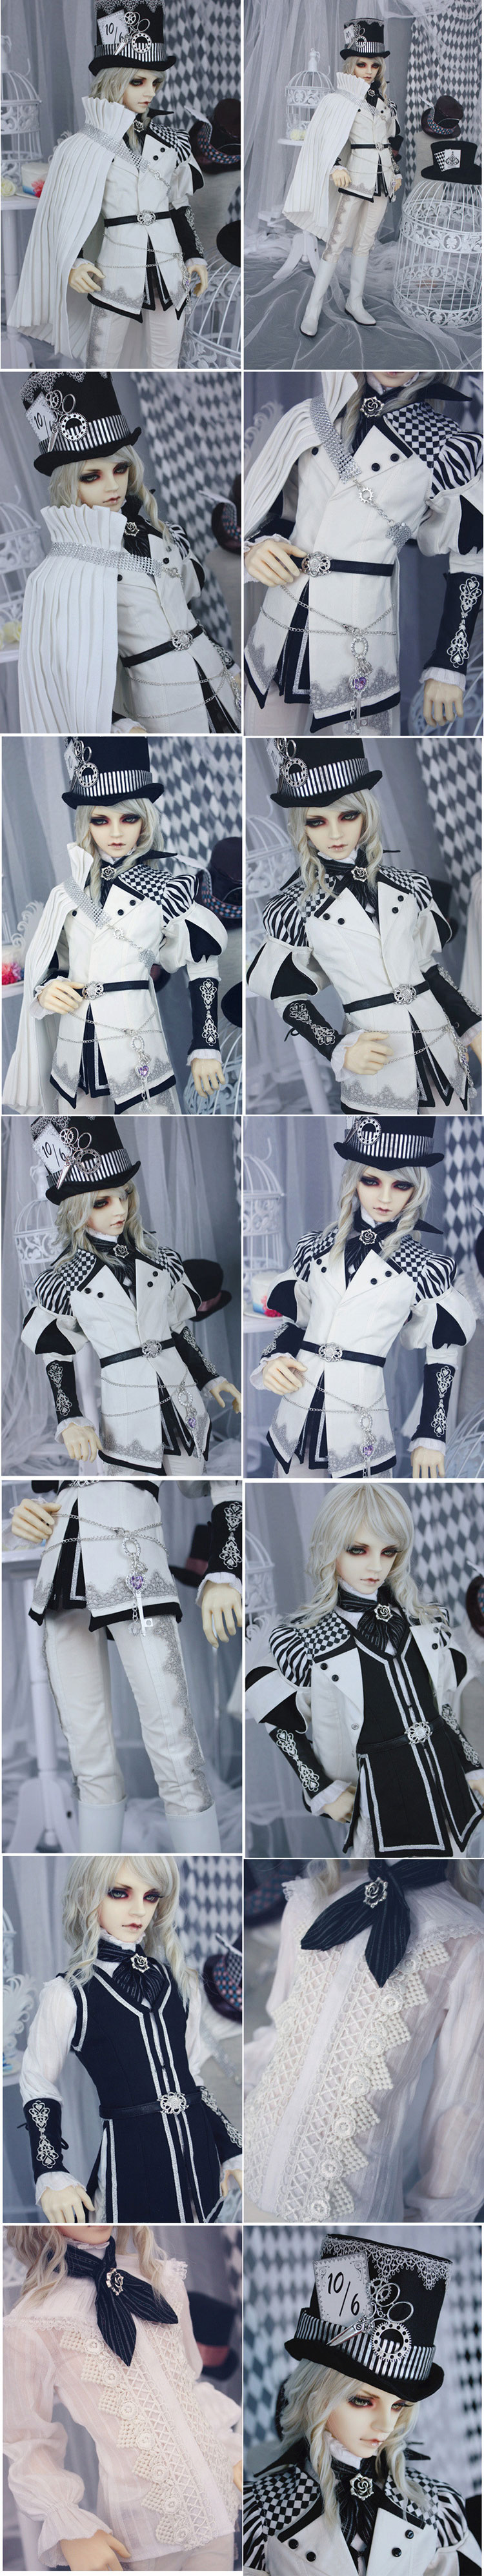 Costume Set The Mad Hatter Edition